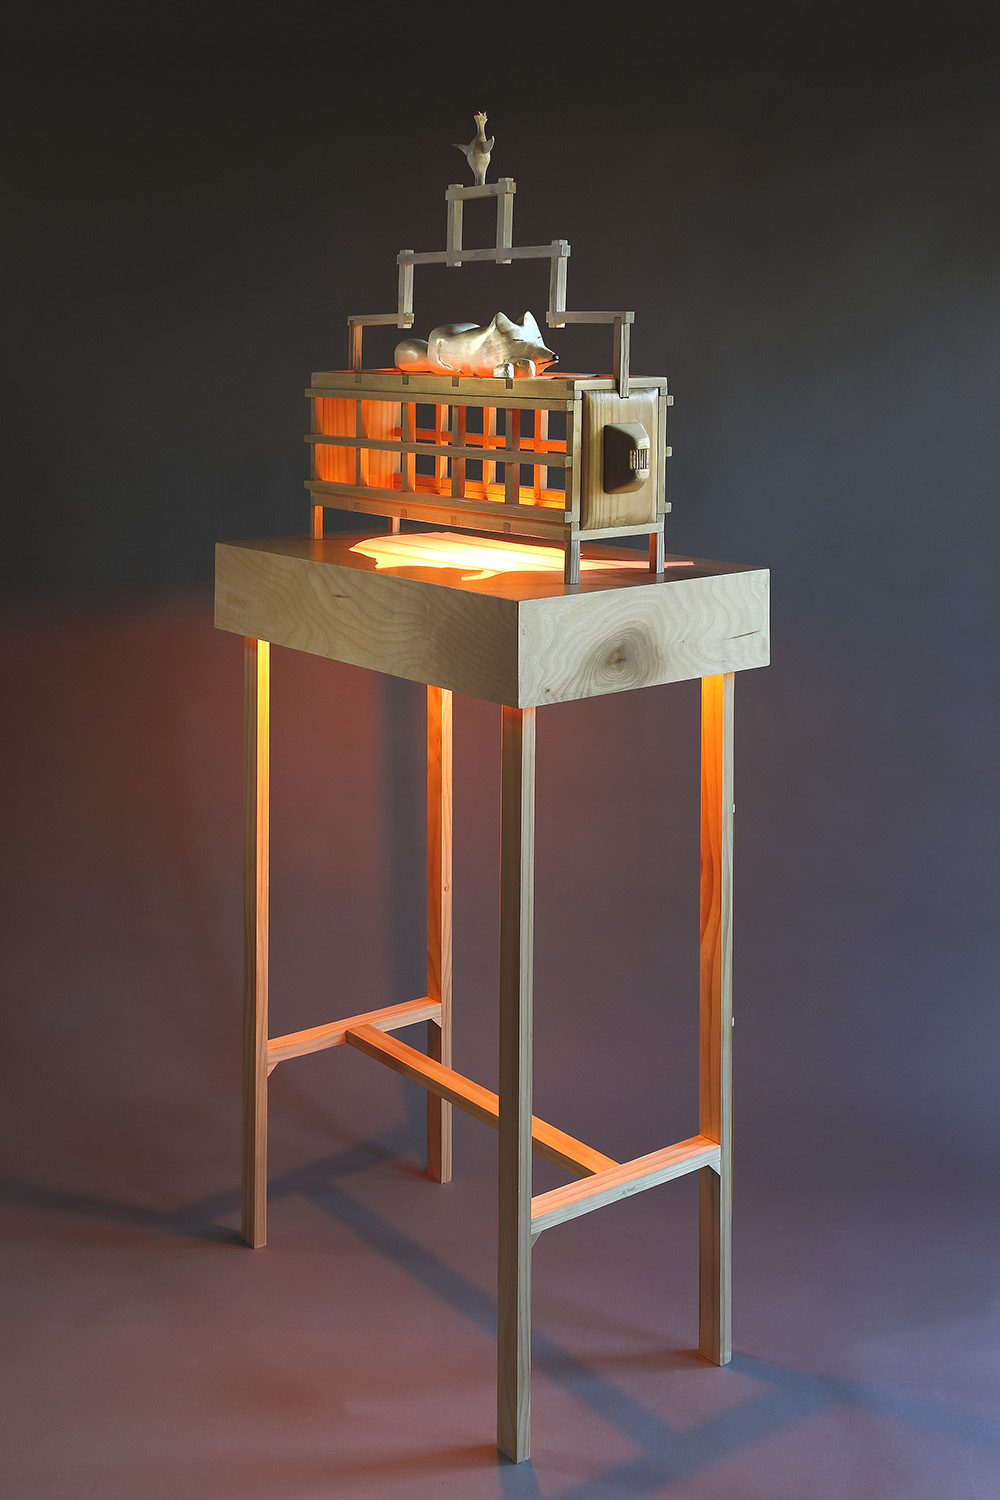 """Fox Trap"", 65"" h x 28"" w x 16"" d; wood, stain, plexiglass, acrylic paint, LED light; © Tom Gormally 2018"